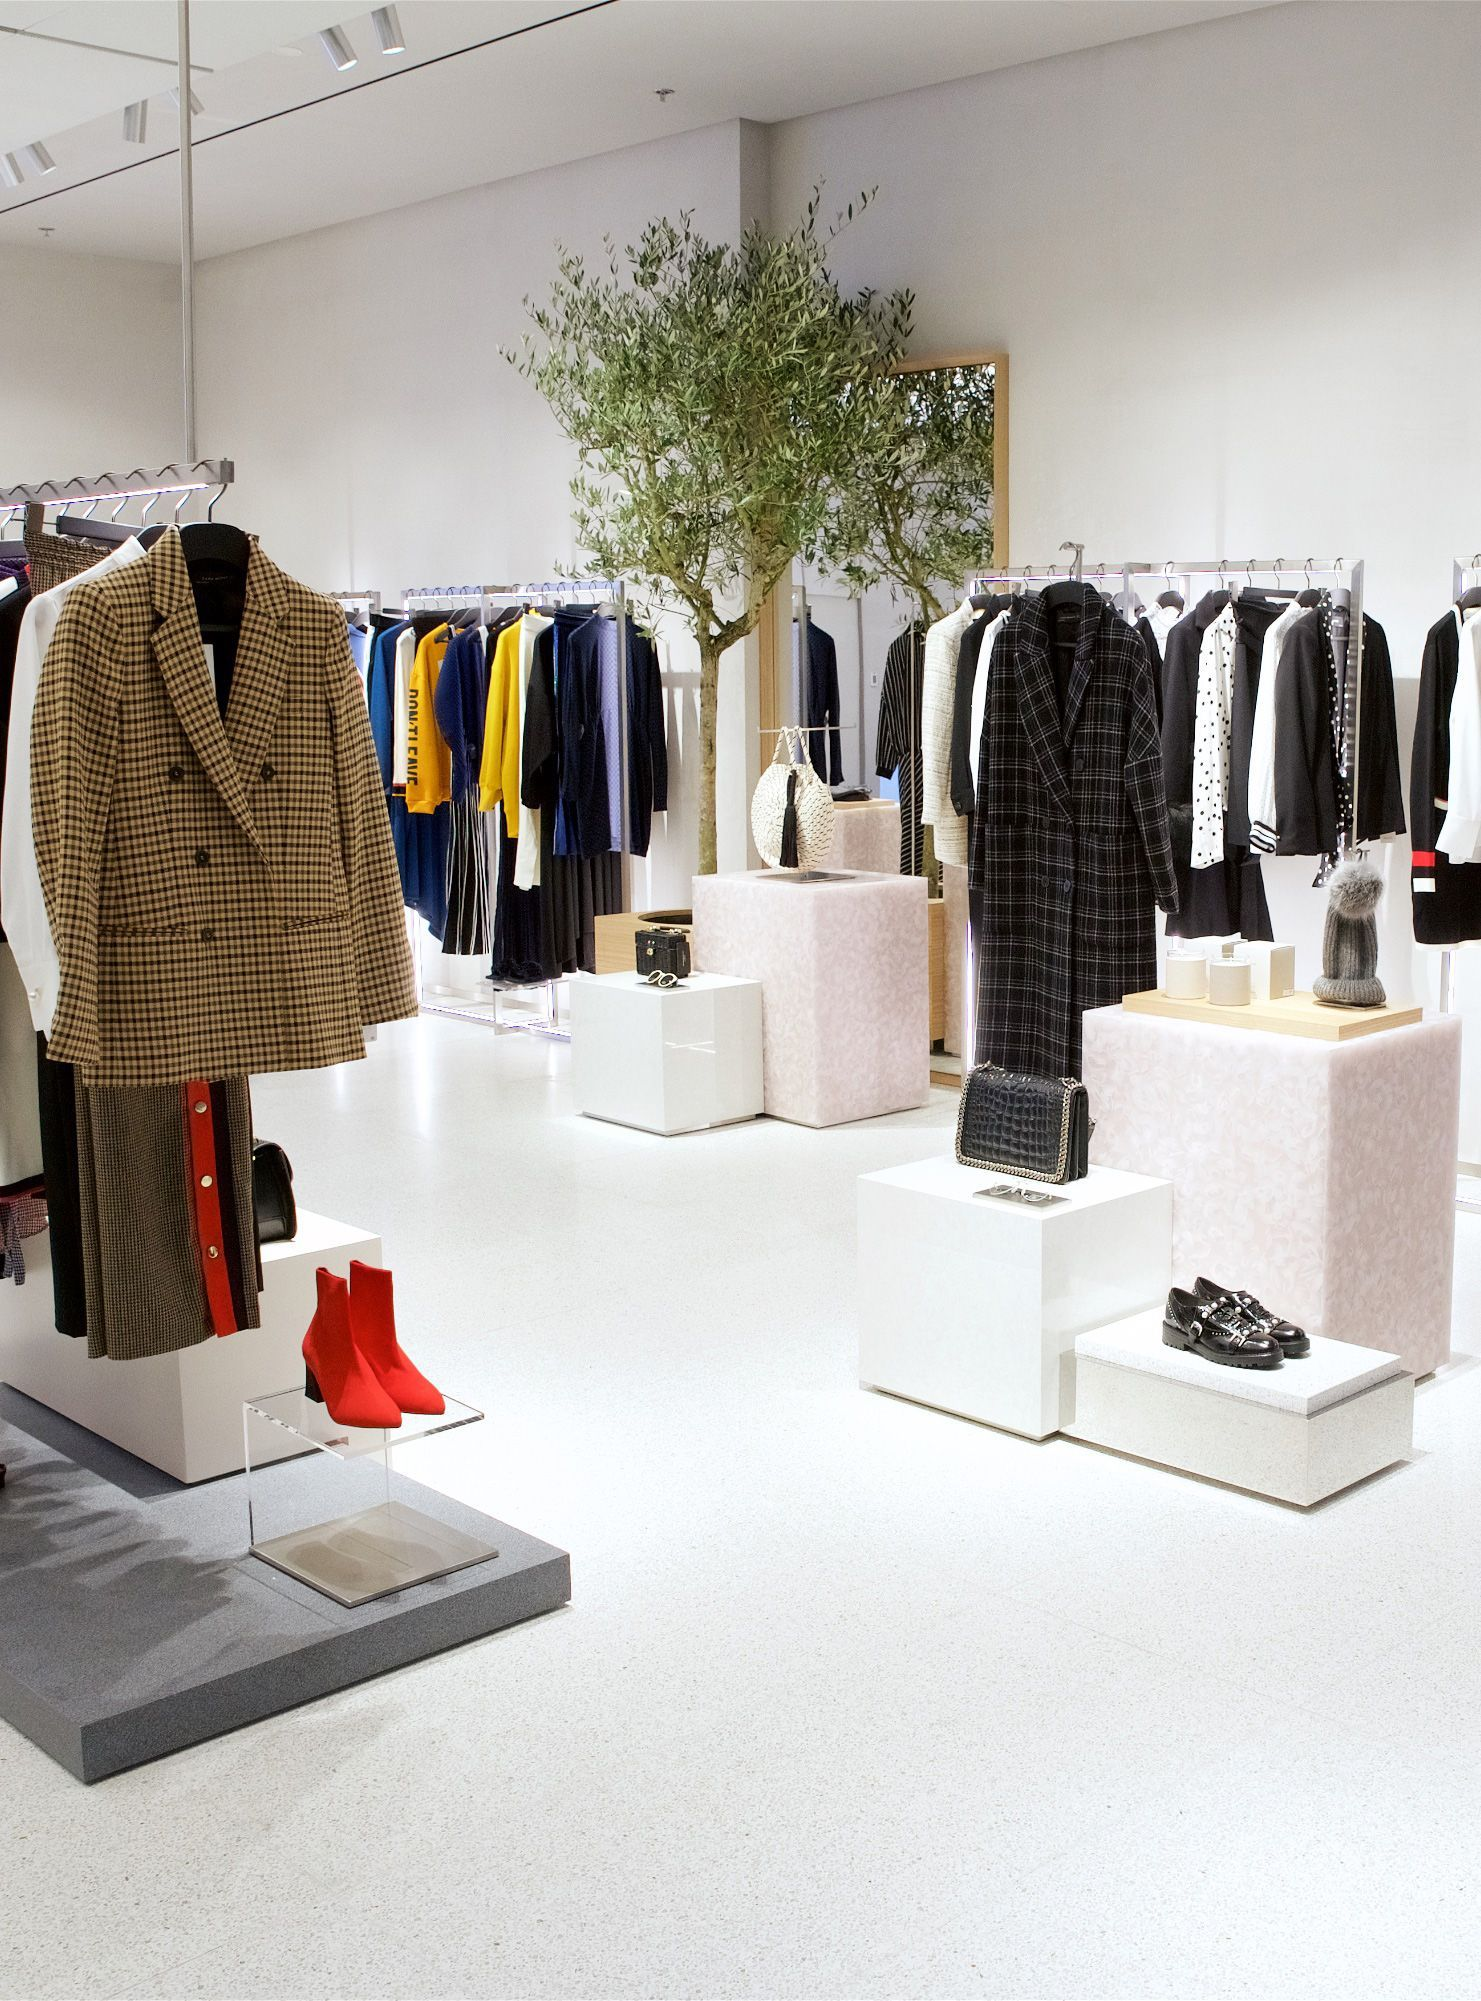 Could this be the zara of the future store design